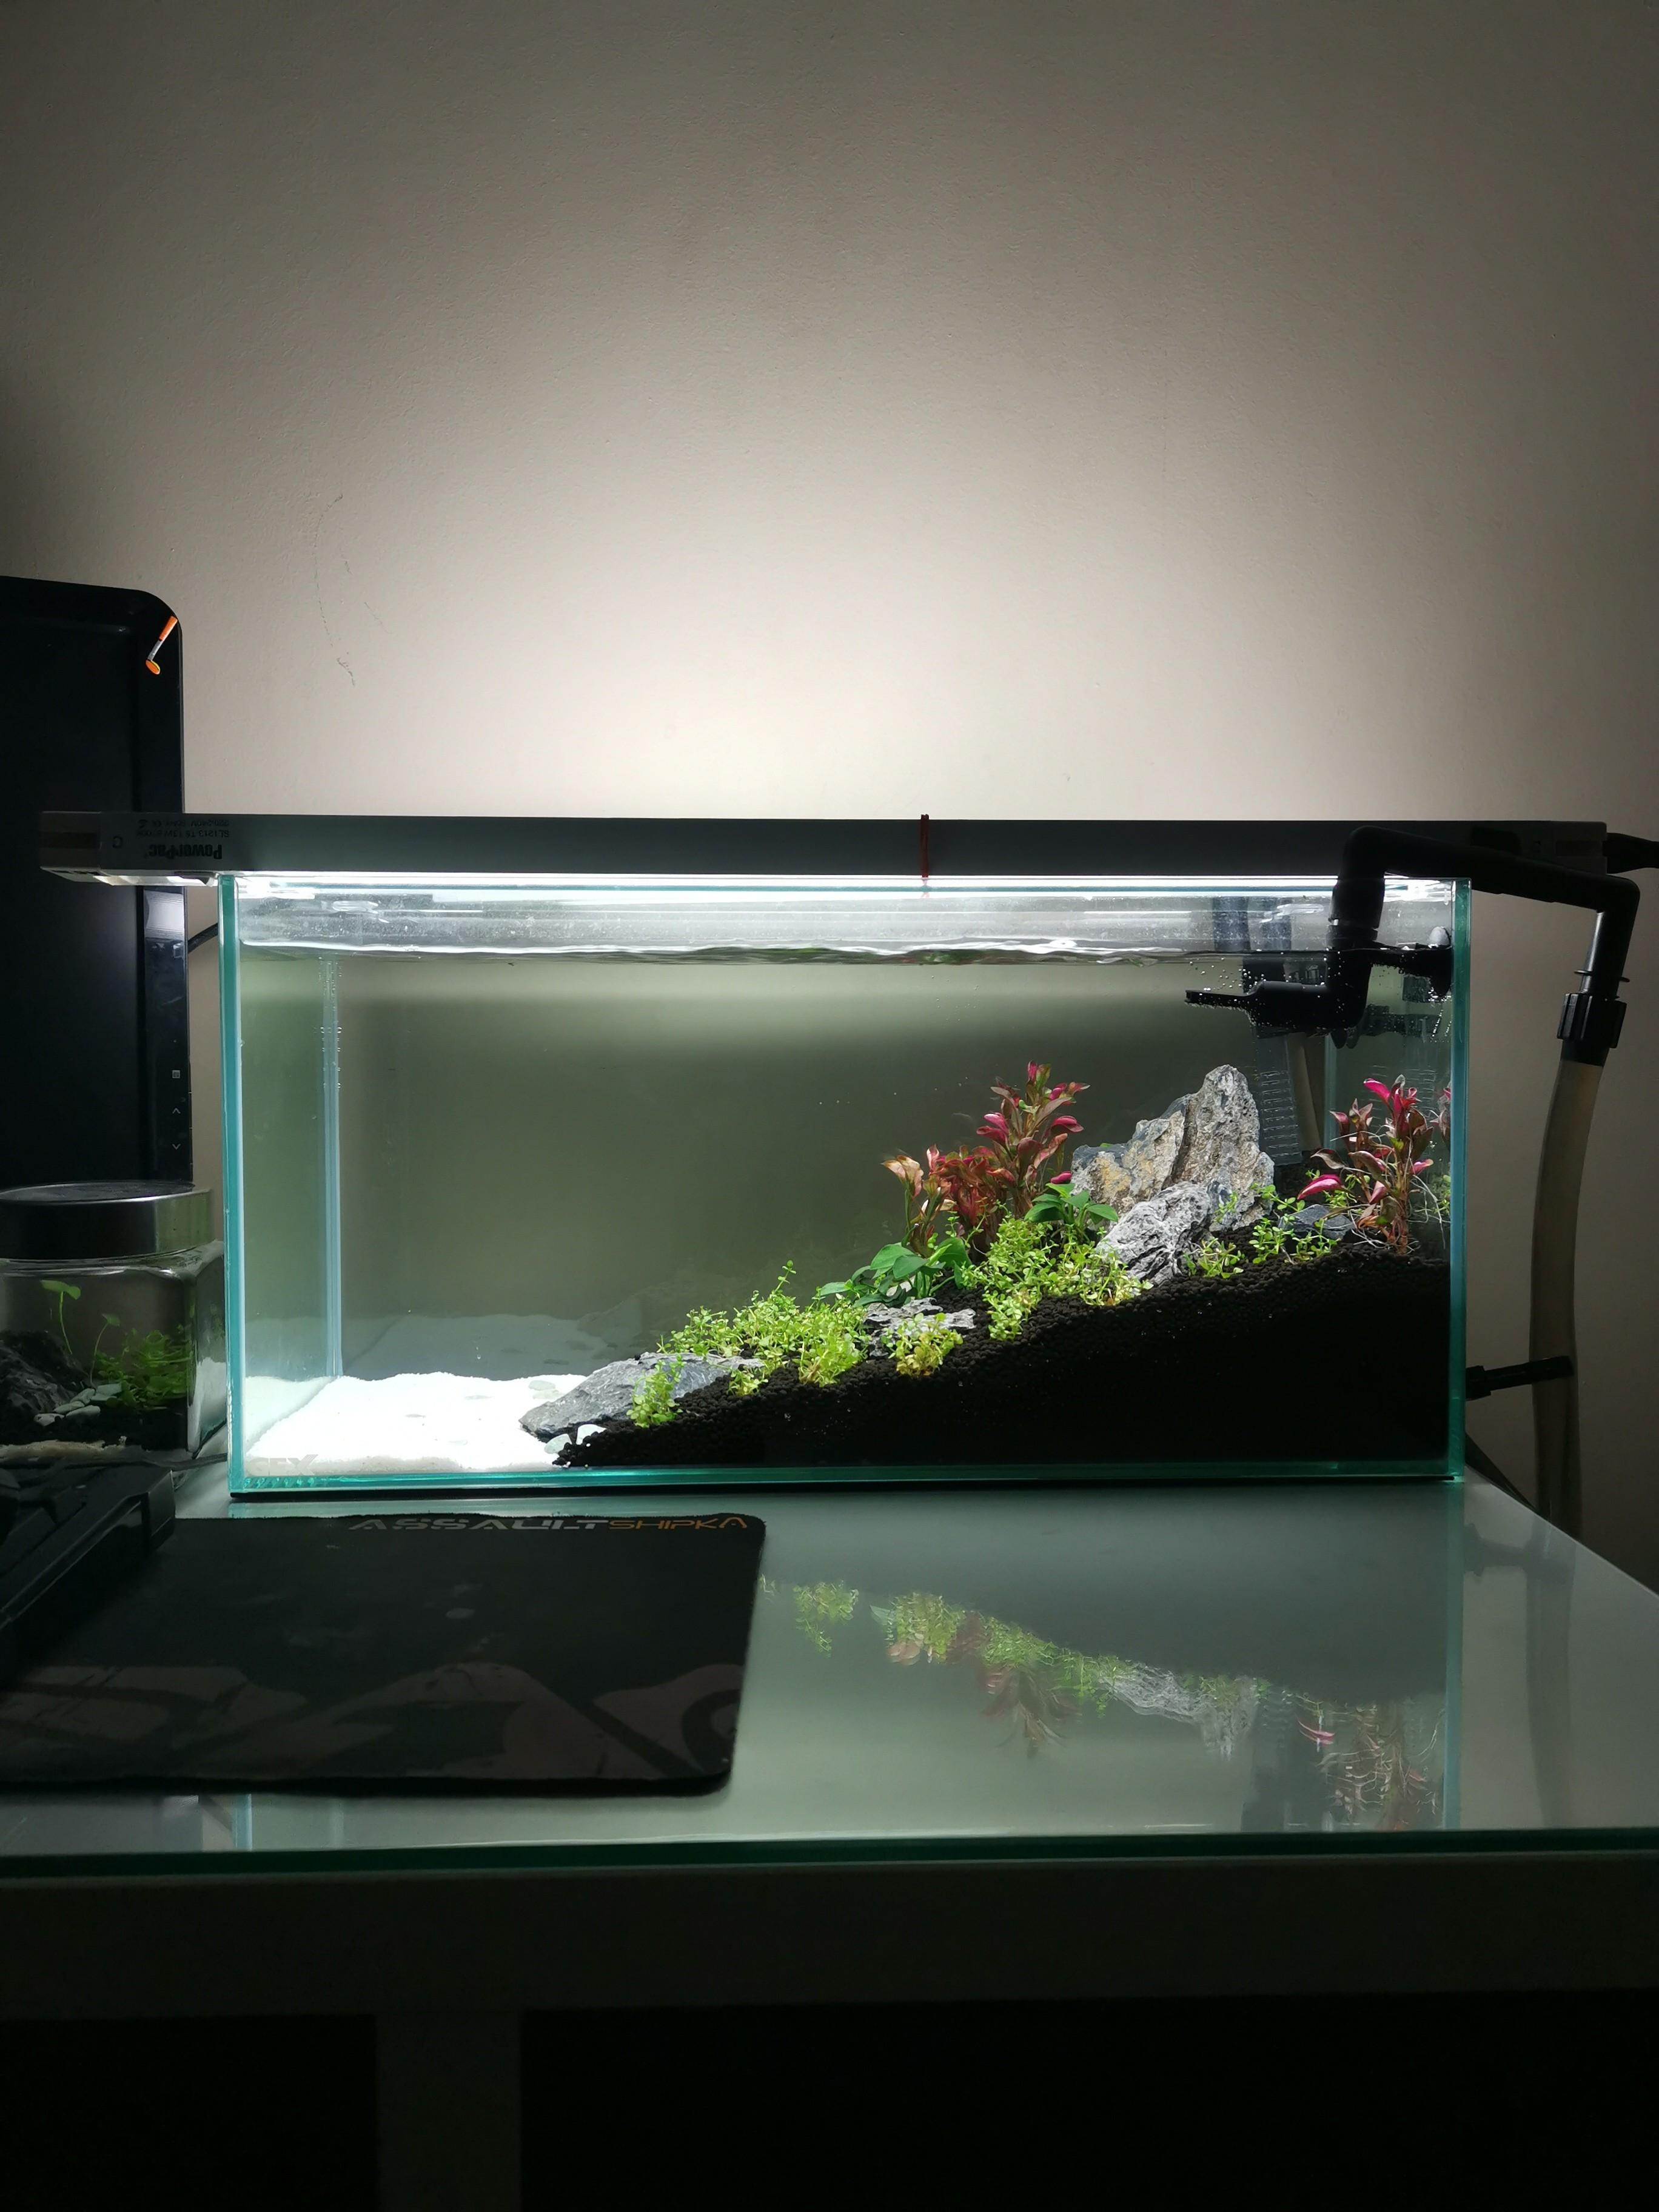 Aquascape Mini Sederhana : aquascape, sederhana, Aquascape, Ideas:, Aquarium